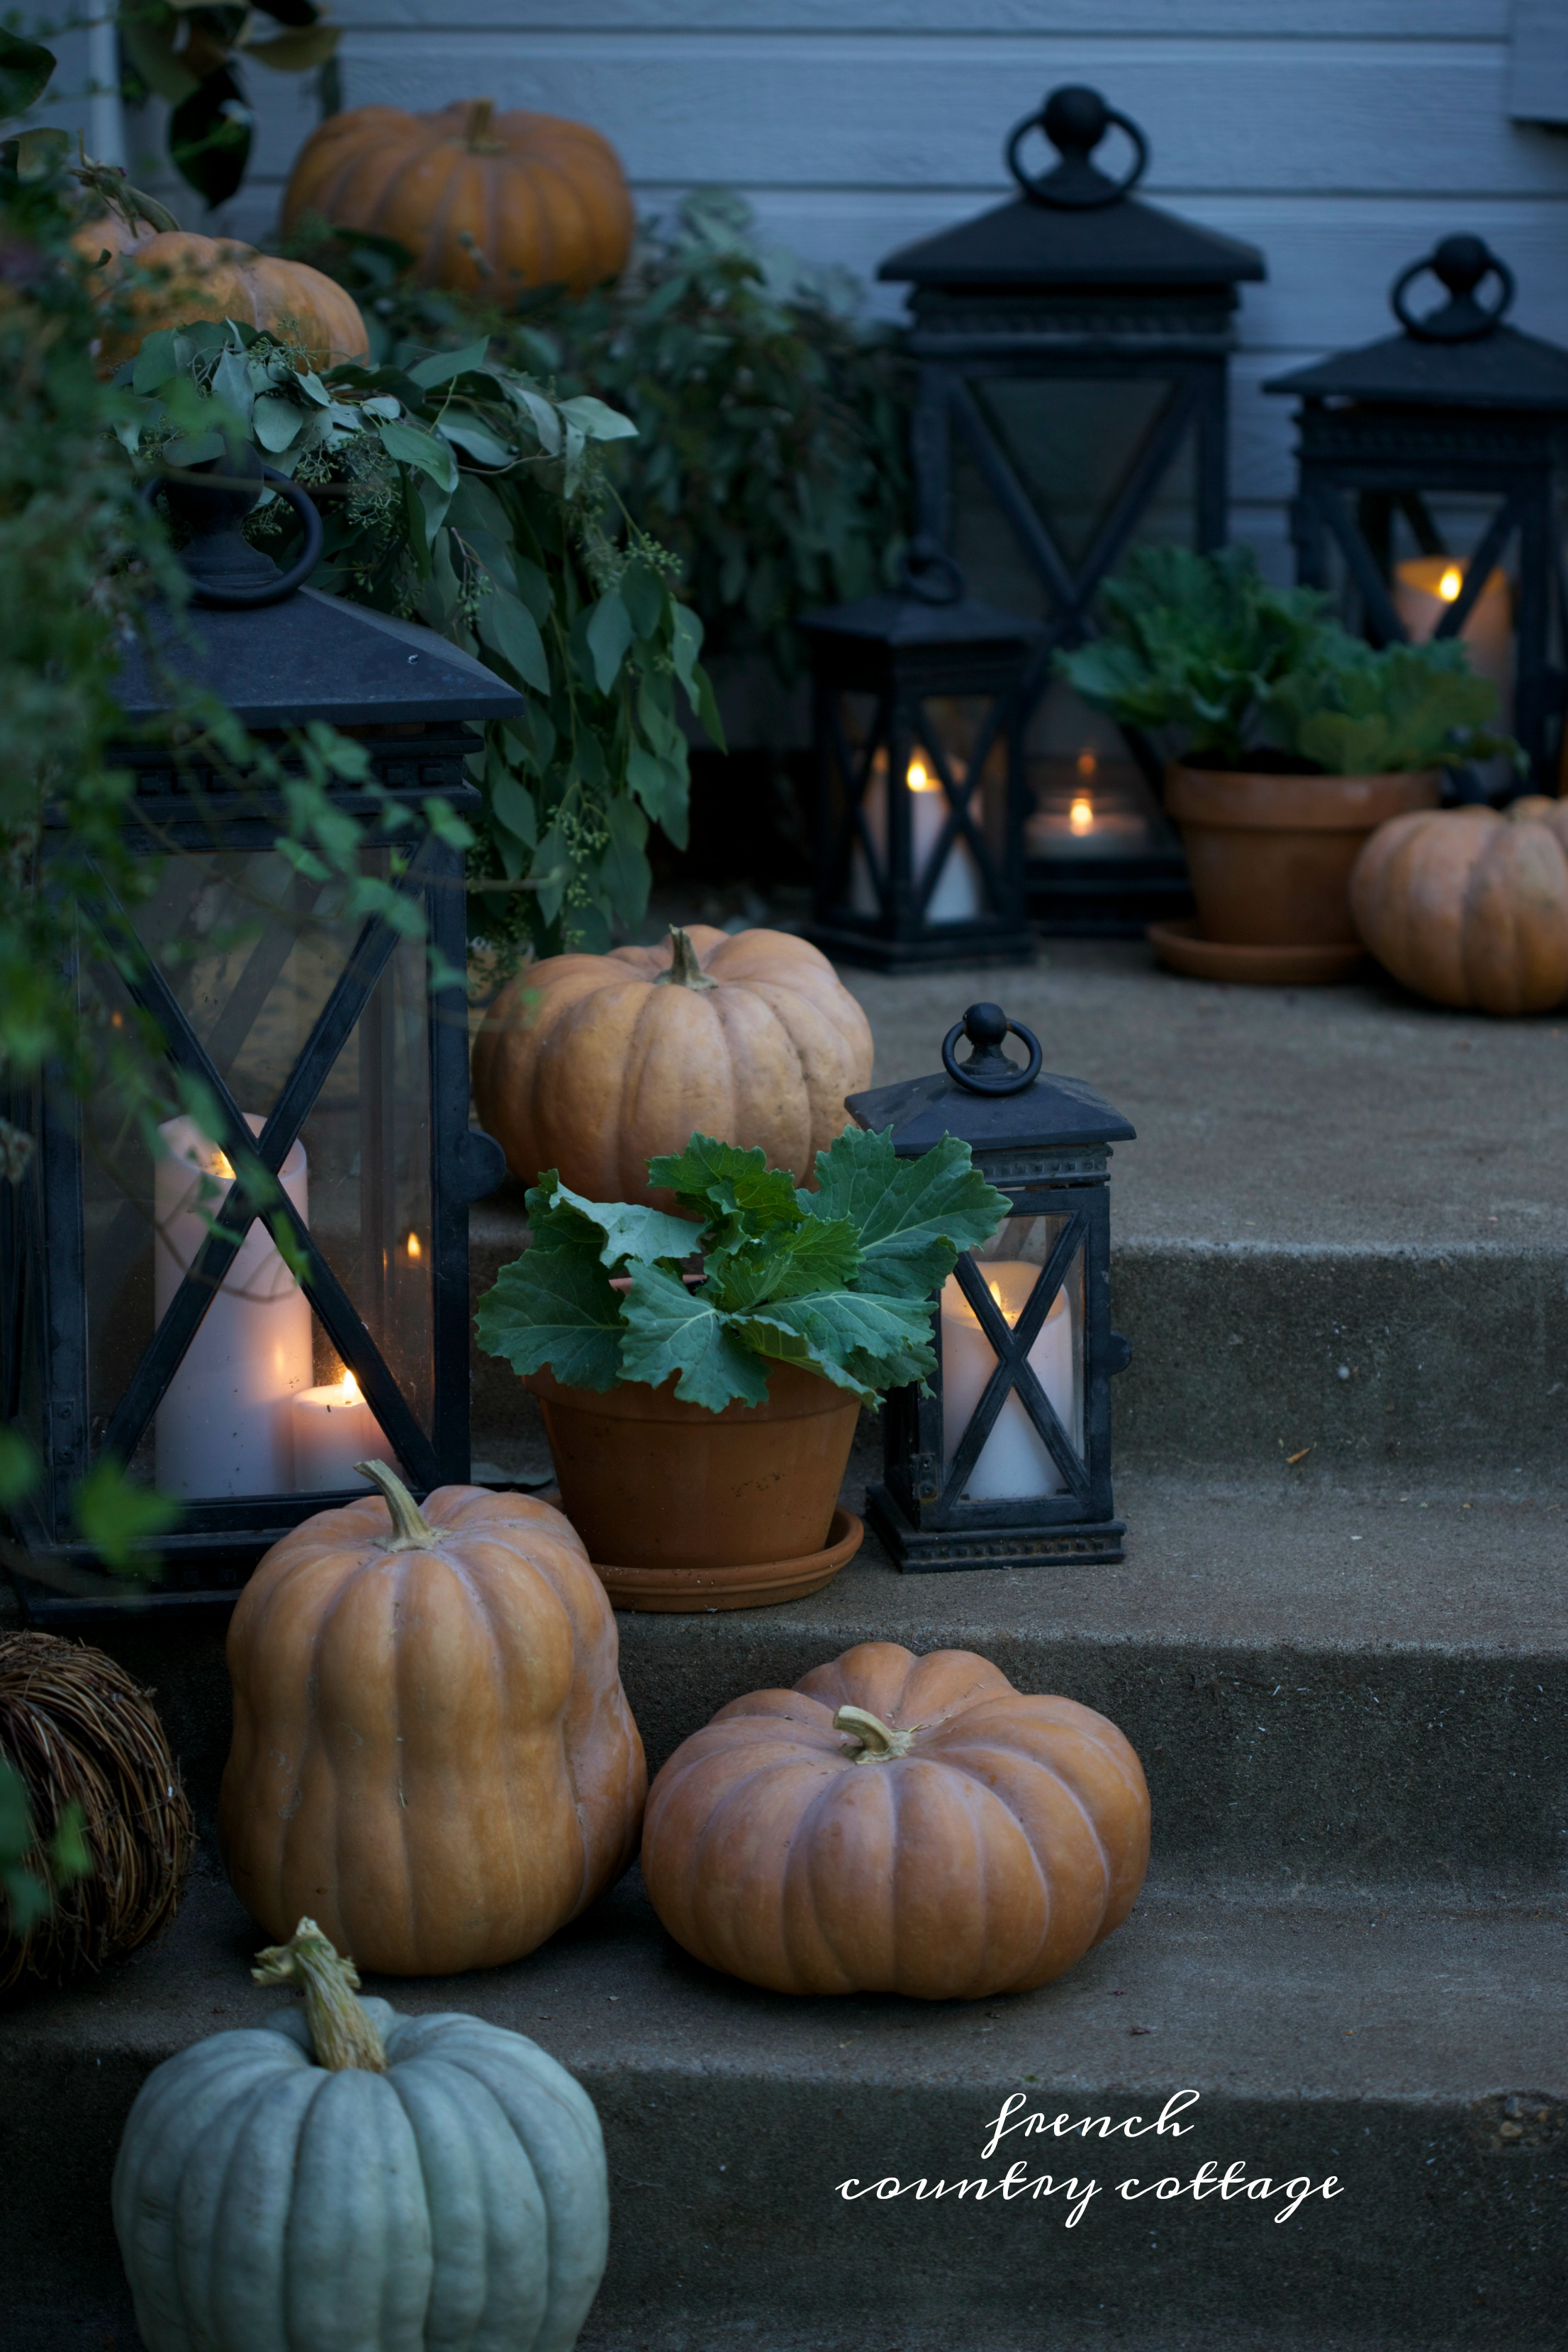 Pumpkin and foliage arrangement with lanterns